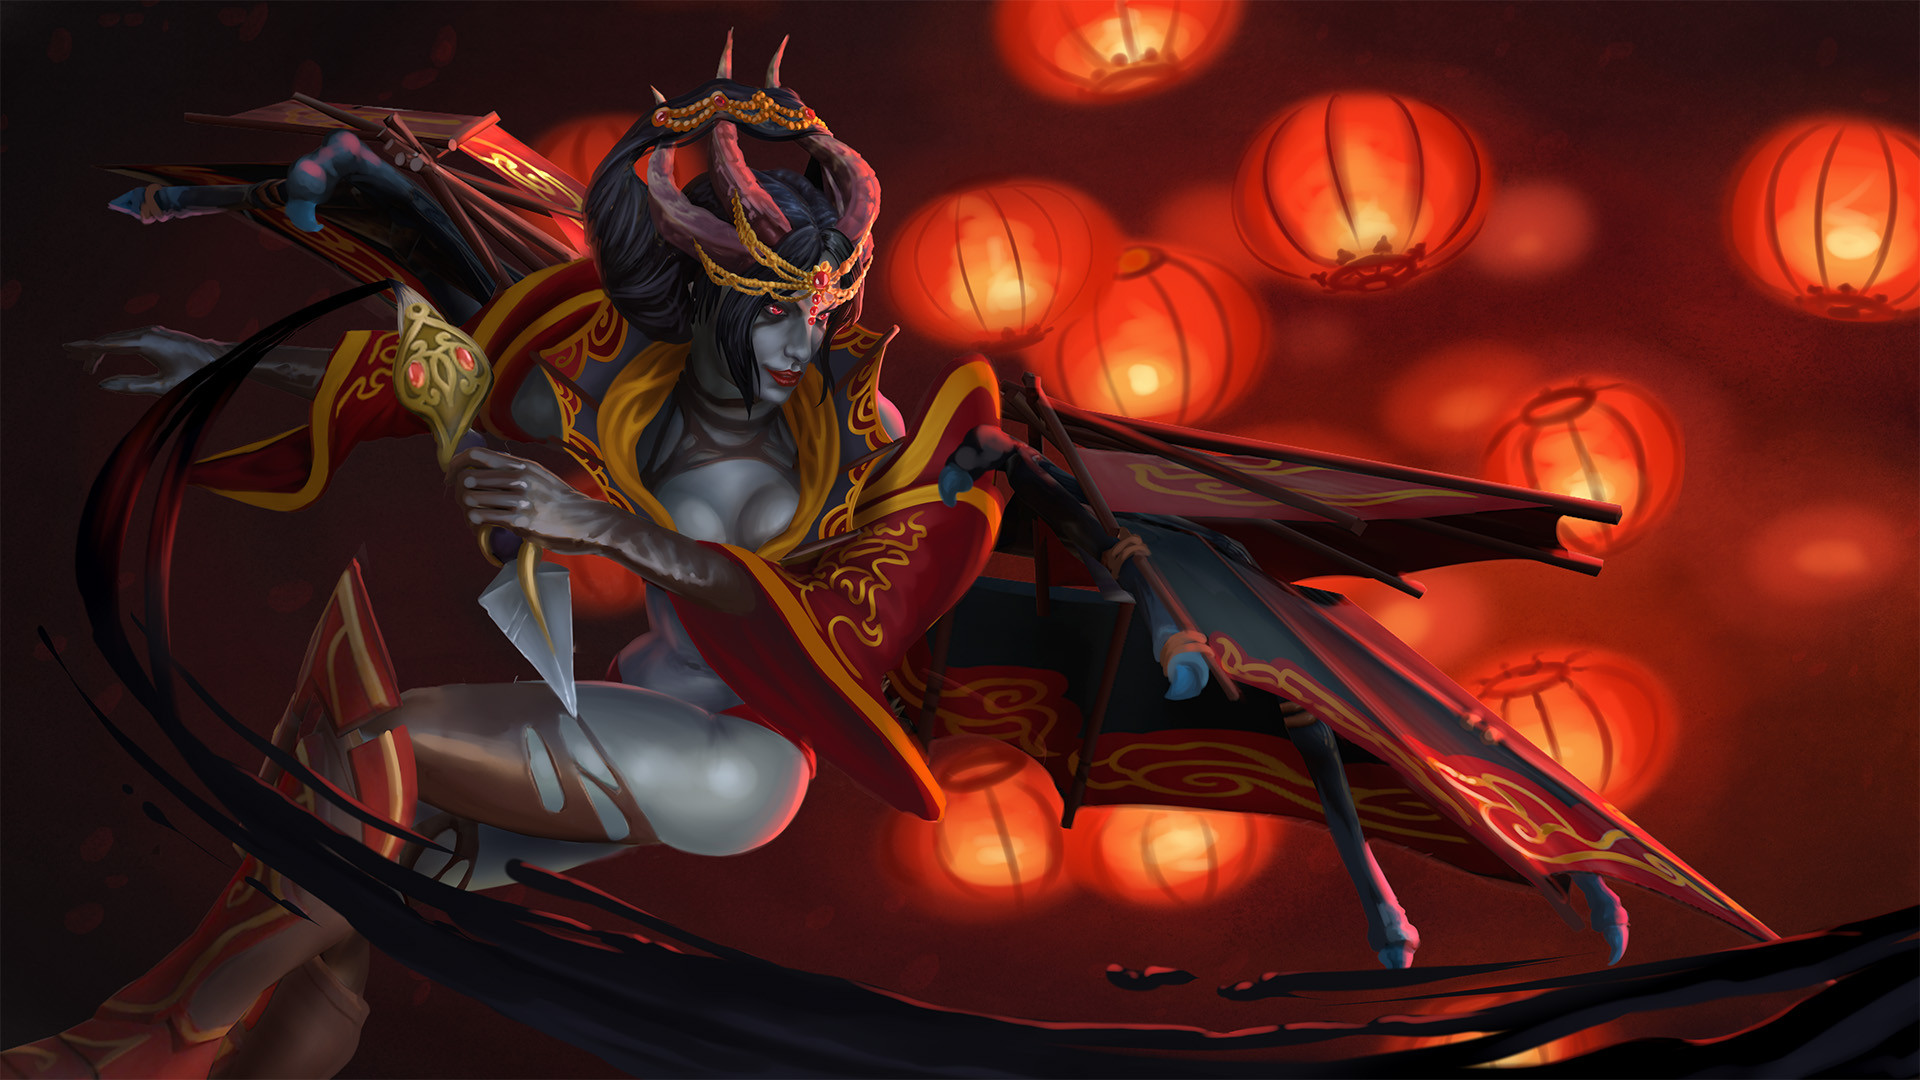 Game Wallpaper Dota 2 Queen Of Pain Loading Screen Regalia Of